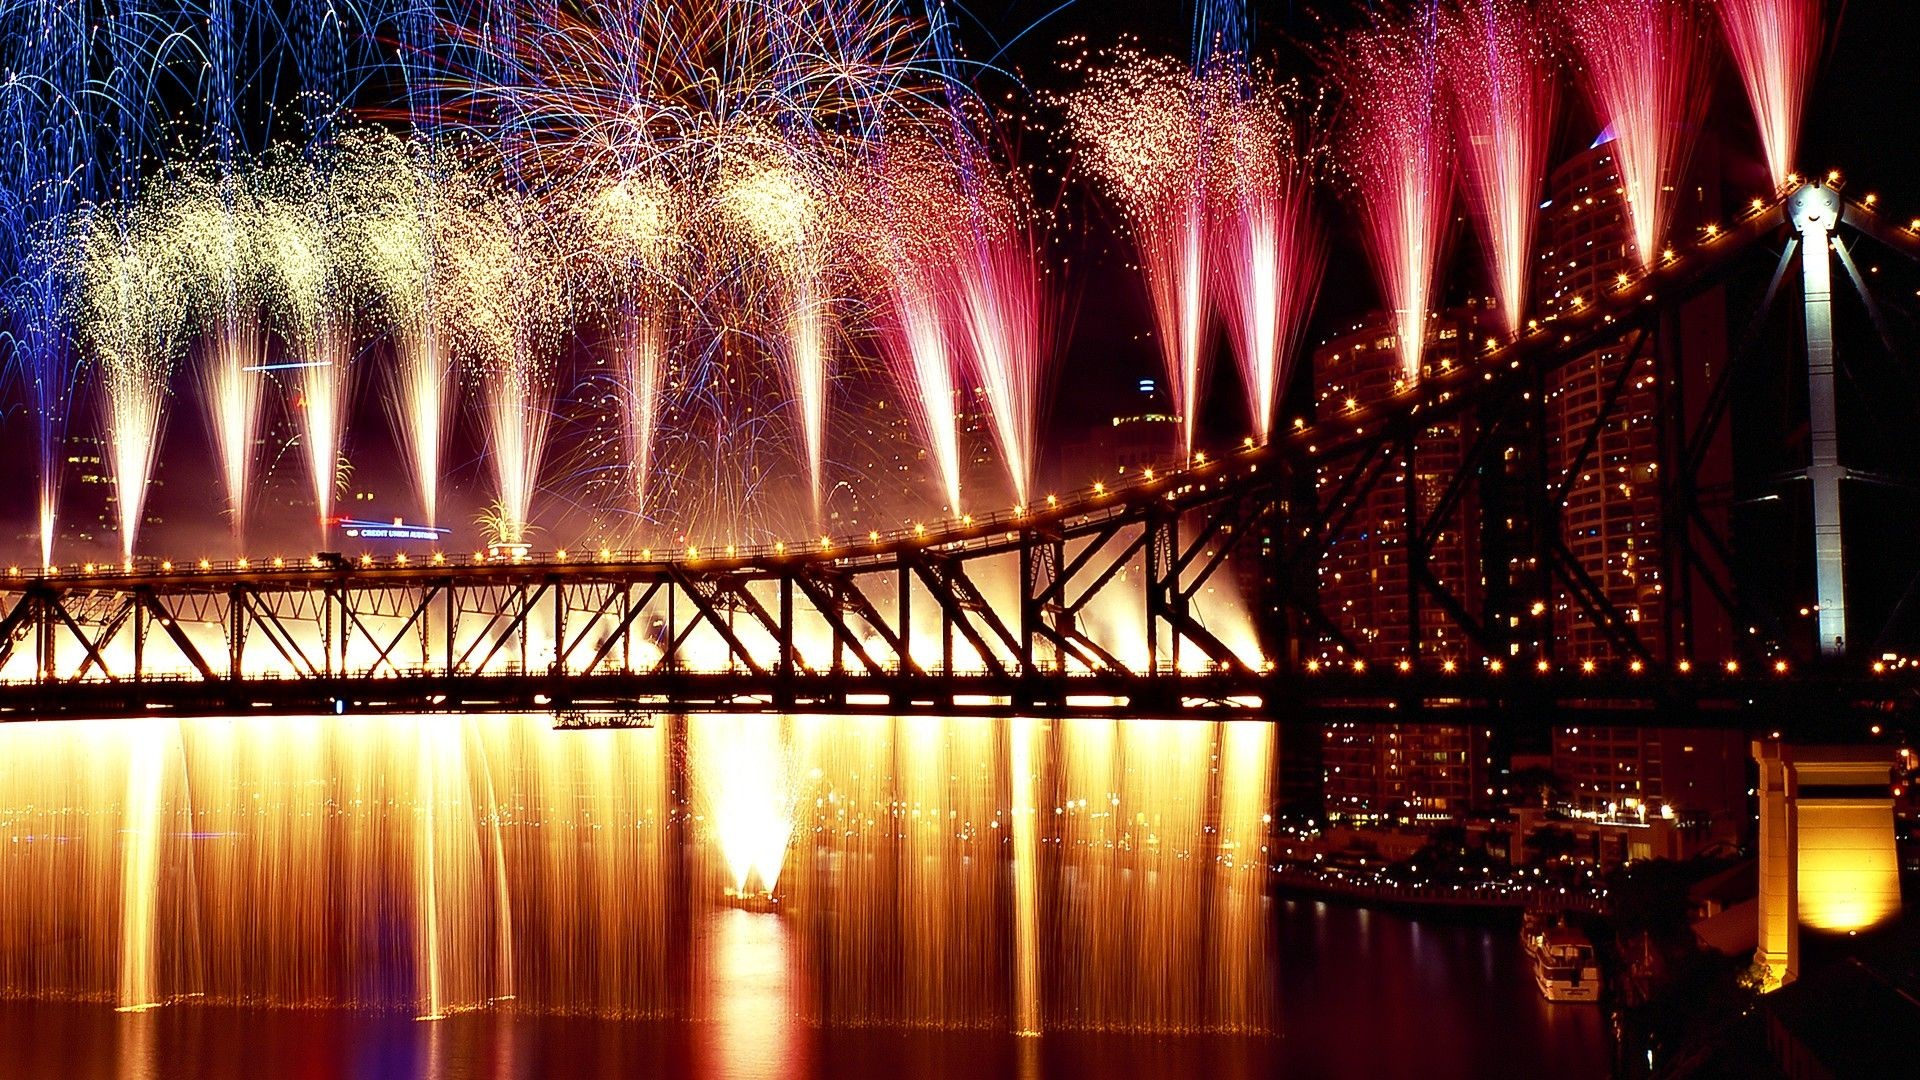 Impressive Fireworks HD Wallpaper in Full HD from the of July, Holidays  category. Tags: of july, bridge, Fireworks